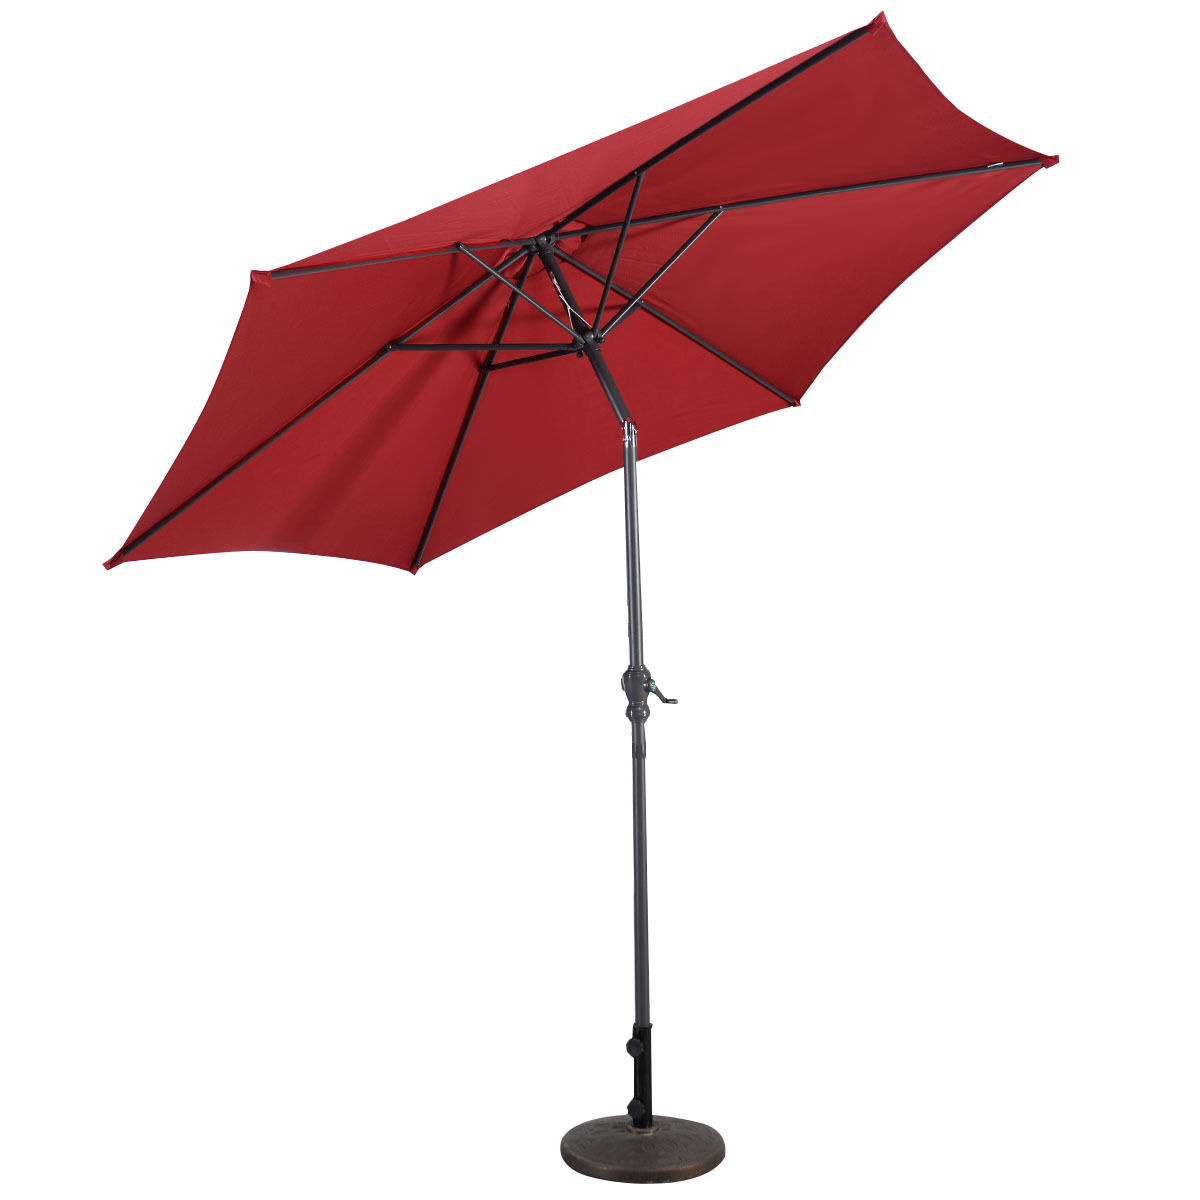 Costway 9FT Patio Umbrella Patio Market Steel Tilt W  Crank Outdoor Yard Garden Burgundy by Costway